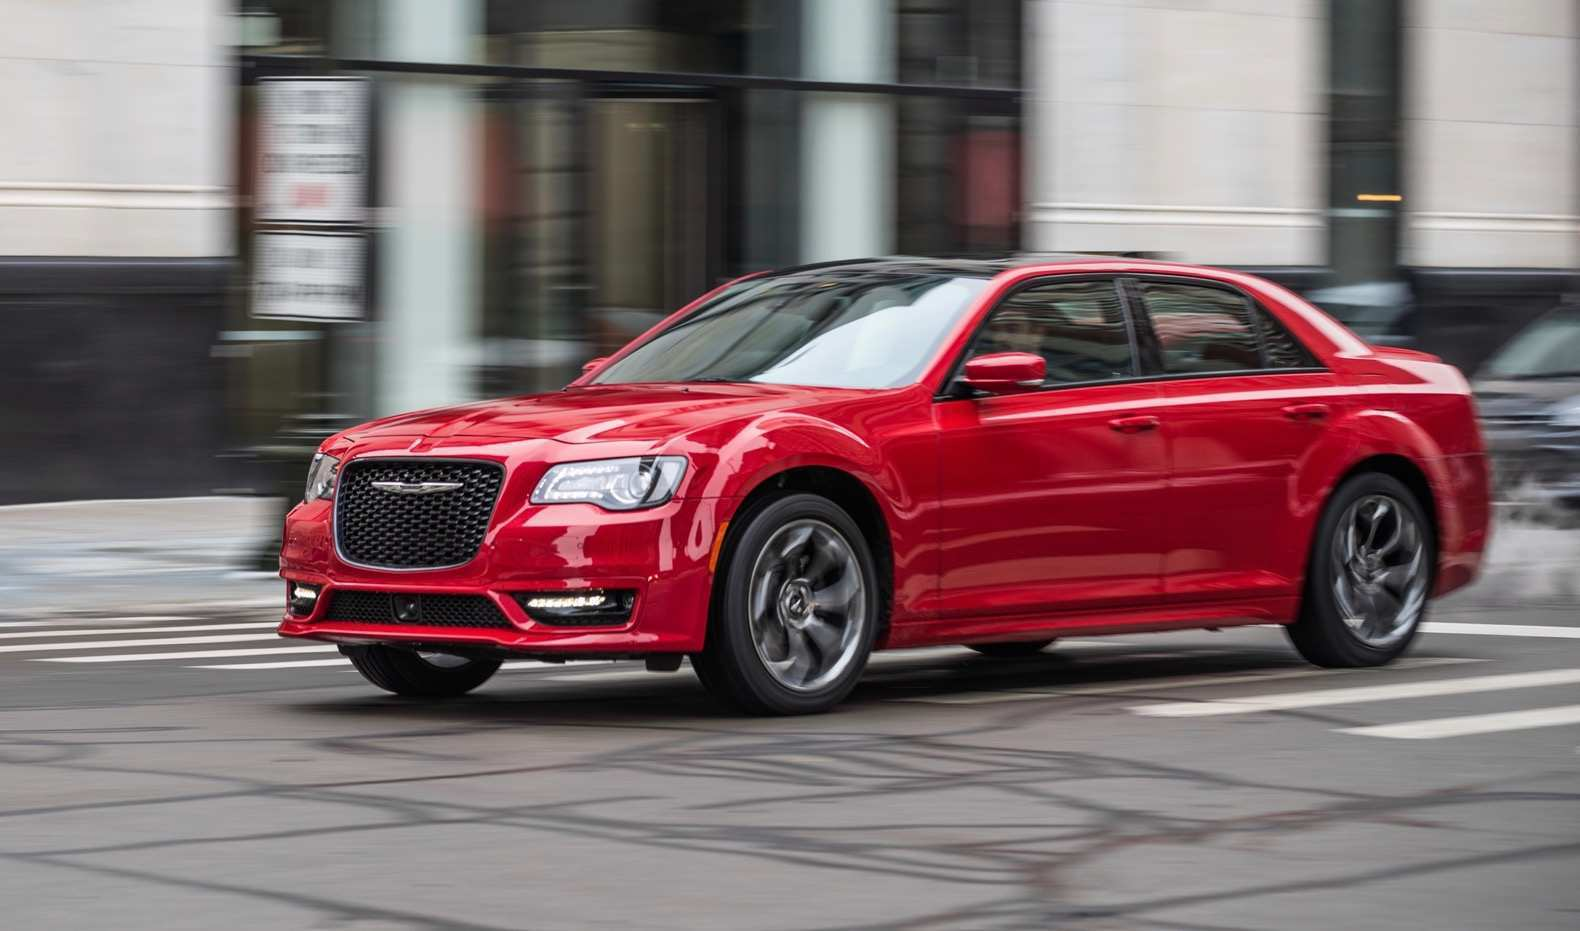 69 All New 2020 Chrysler 300 Model